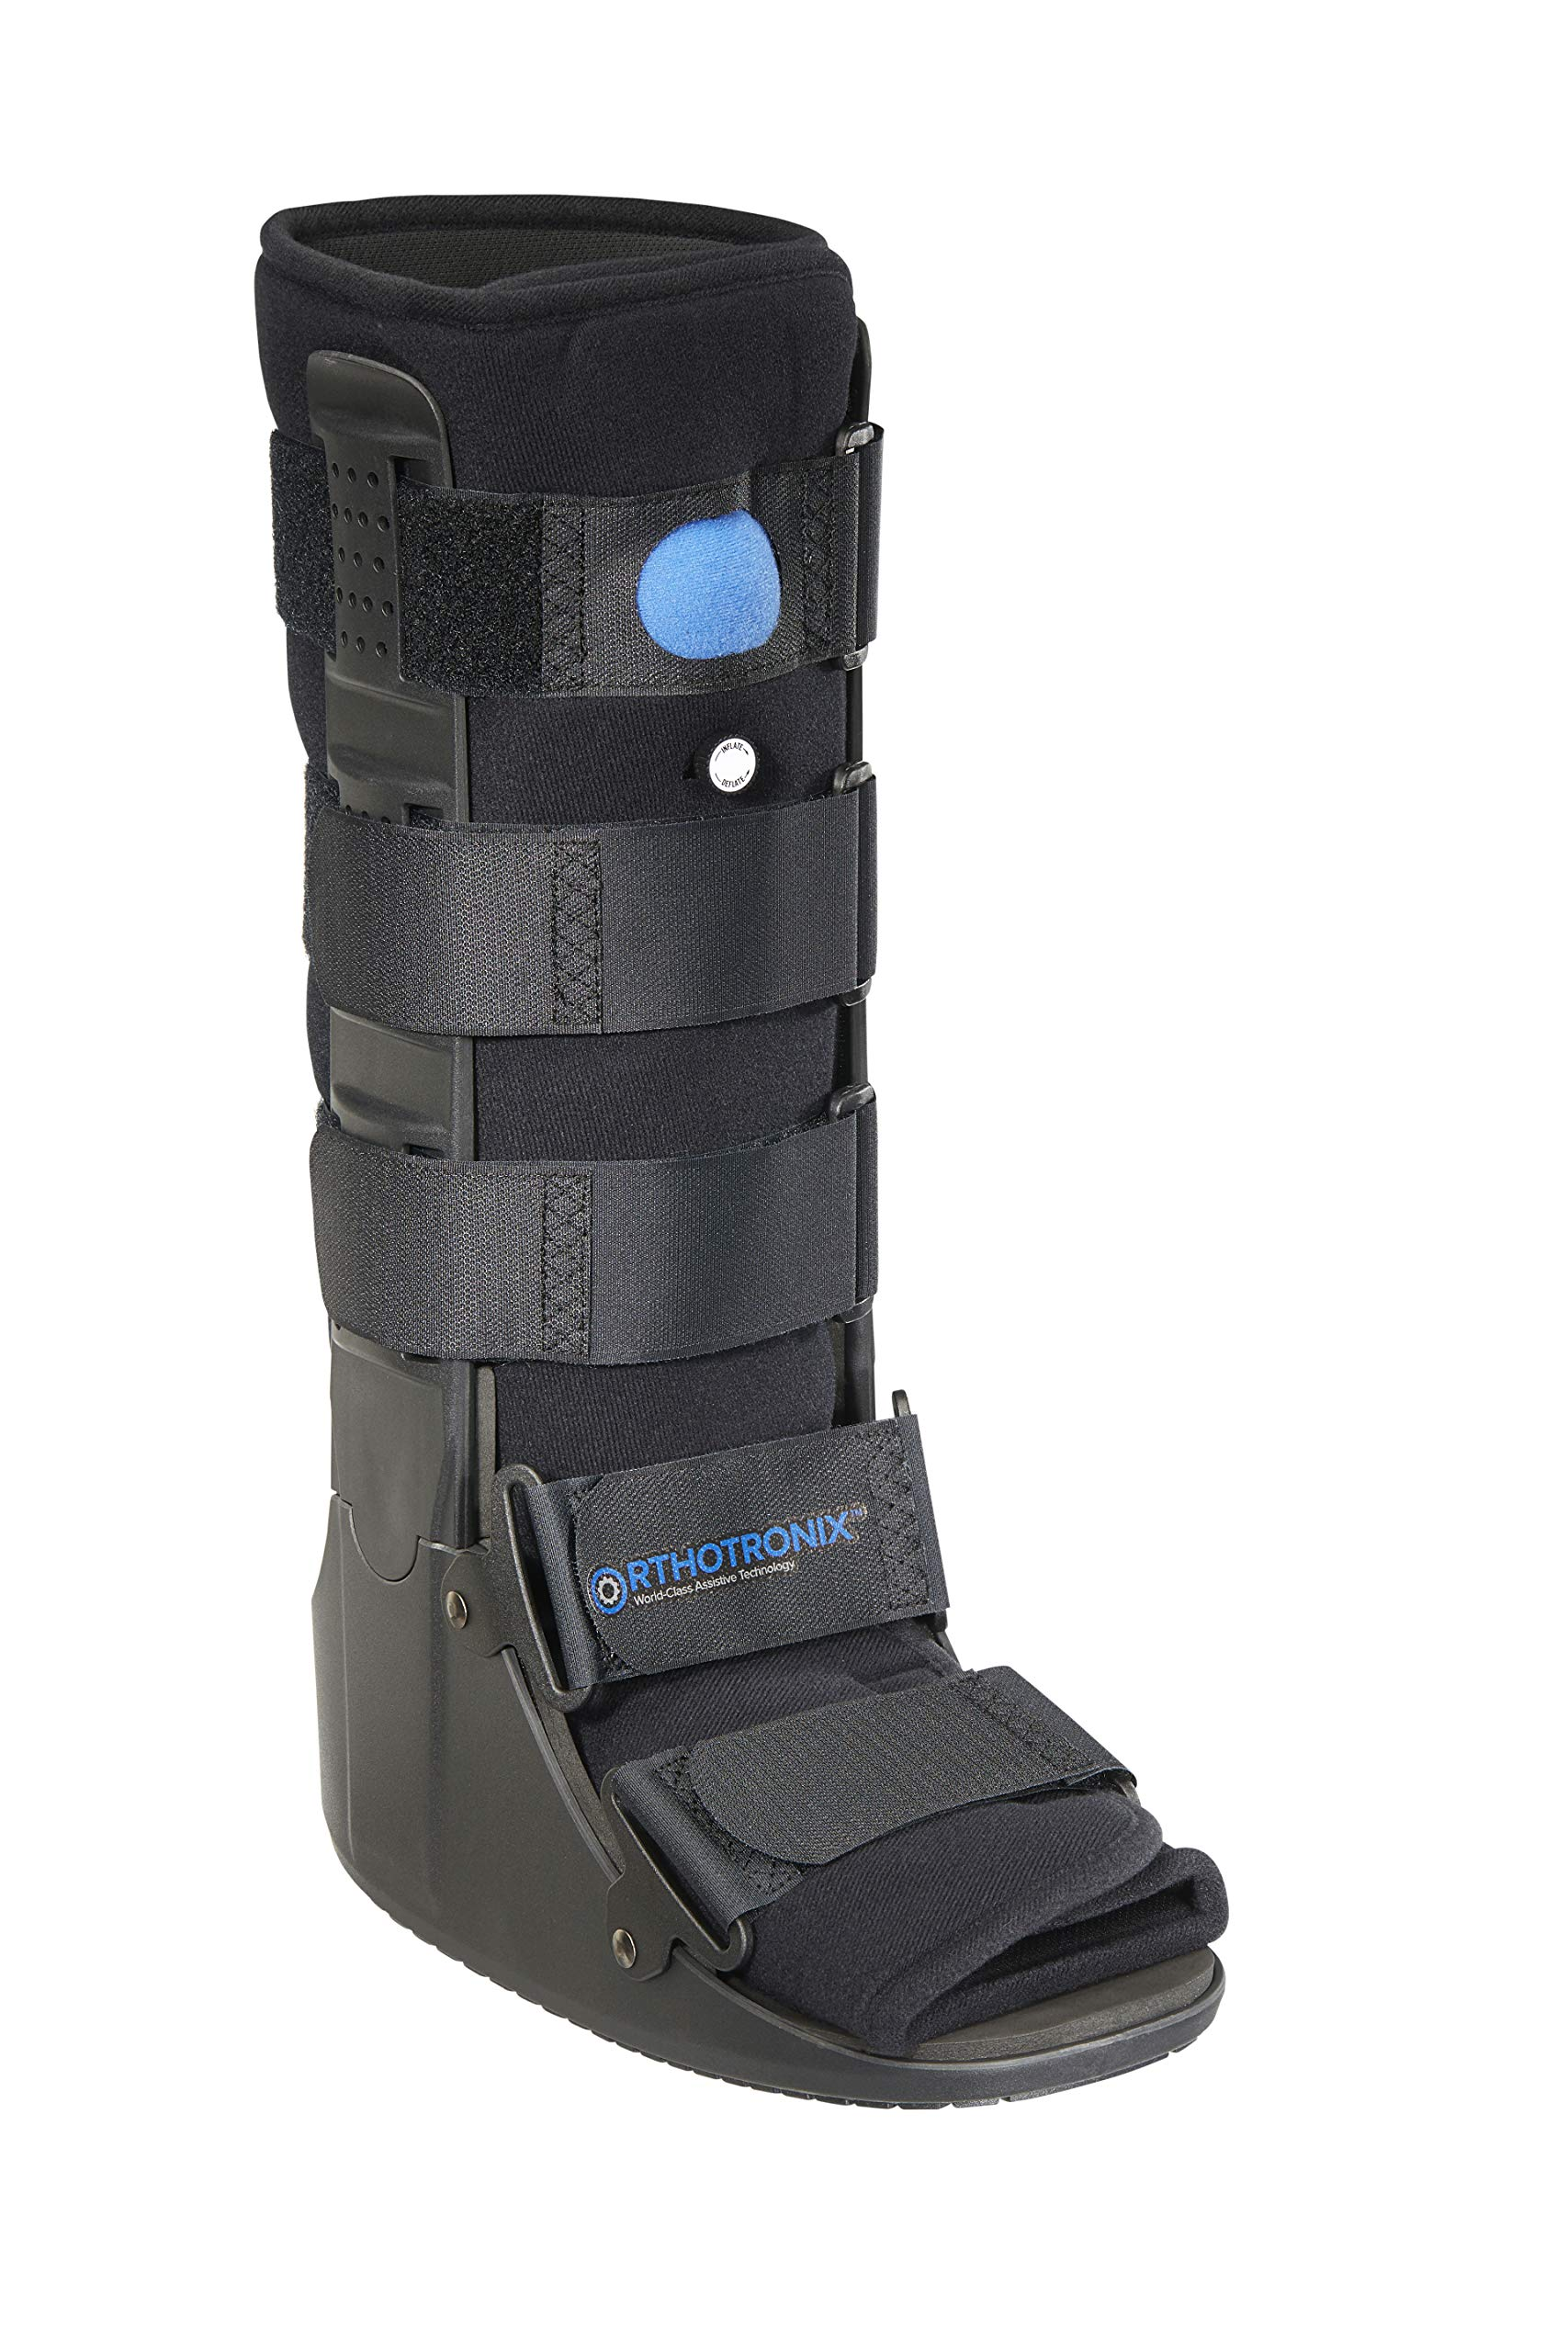 Orthotronix Tall Air Cam Walker Boot (XS) by Orthotronix